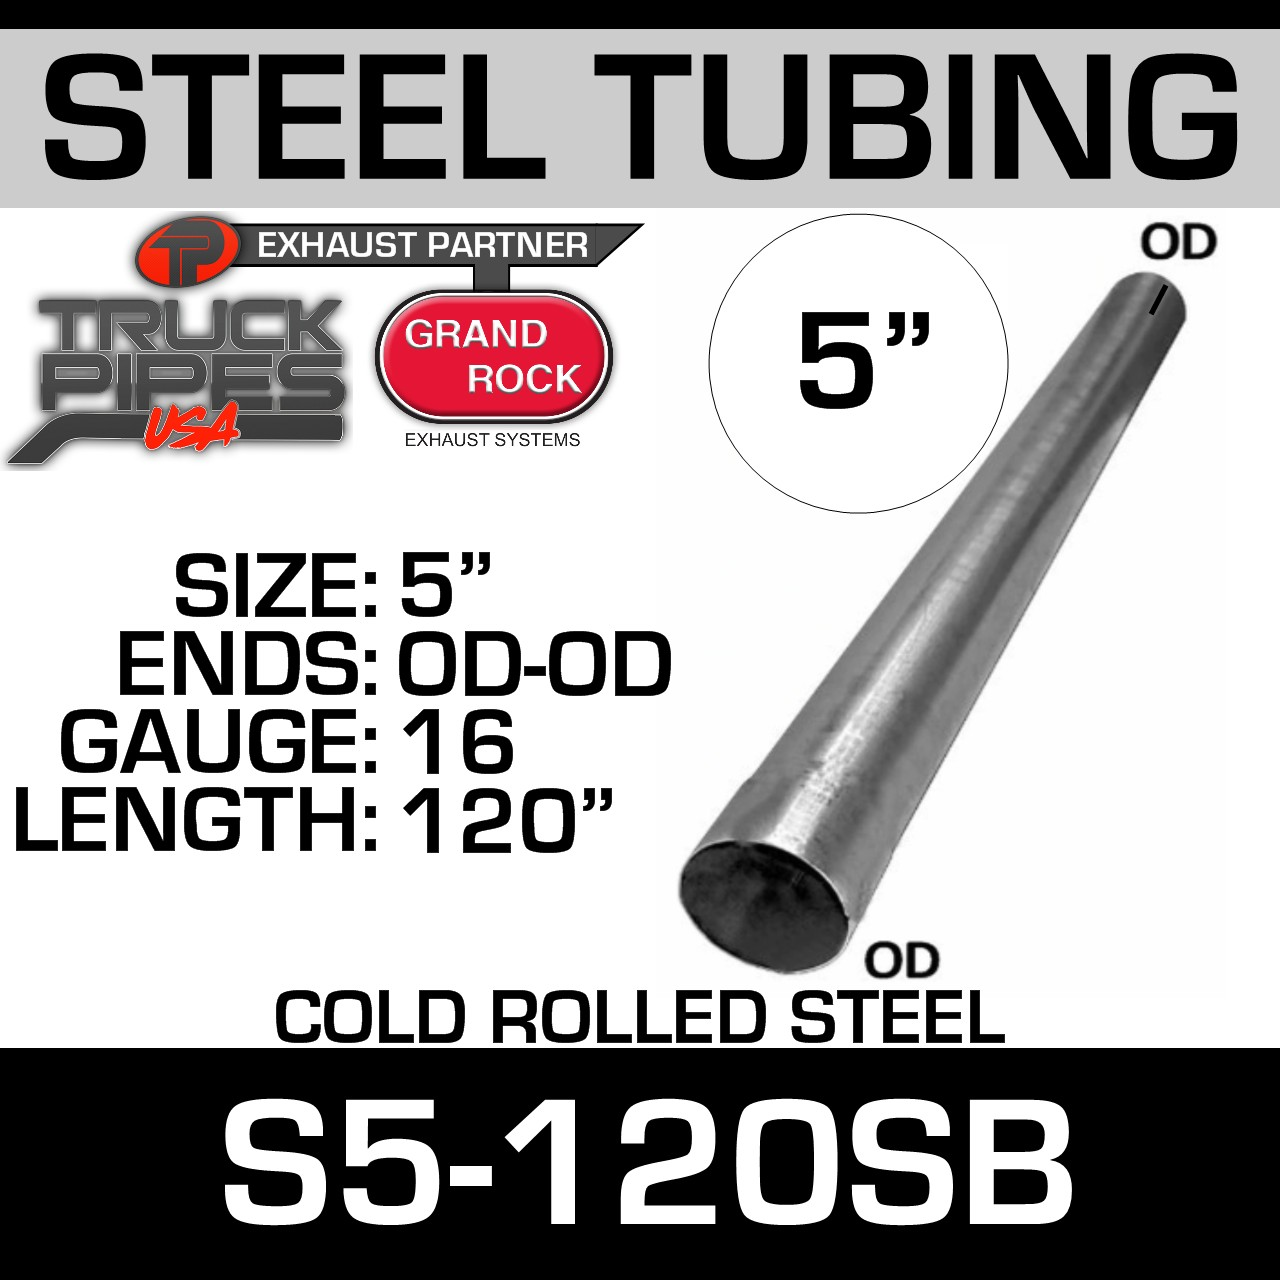 s5-120sb-cold-roll-steel-exhaust-tubing-5-inch-diameter-od-end-120-inches-long.jpg